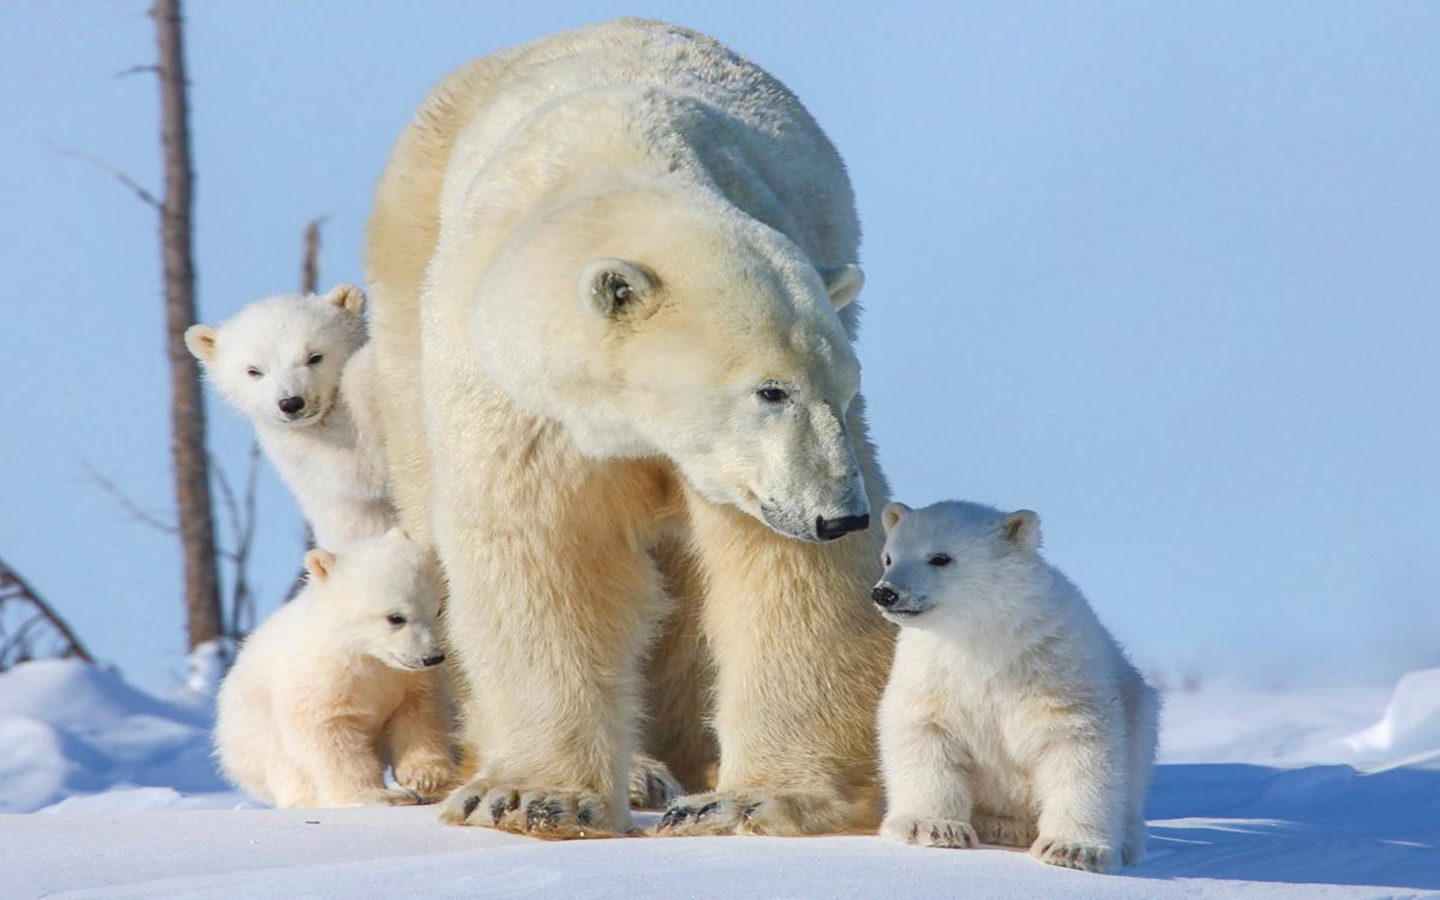 Cute Lion Cubs Hd Wallpapers Polar Bear Family Three Small Cubs Desktop Wallpaper Hd